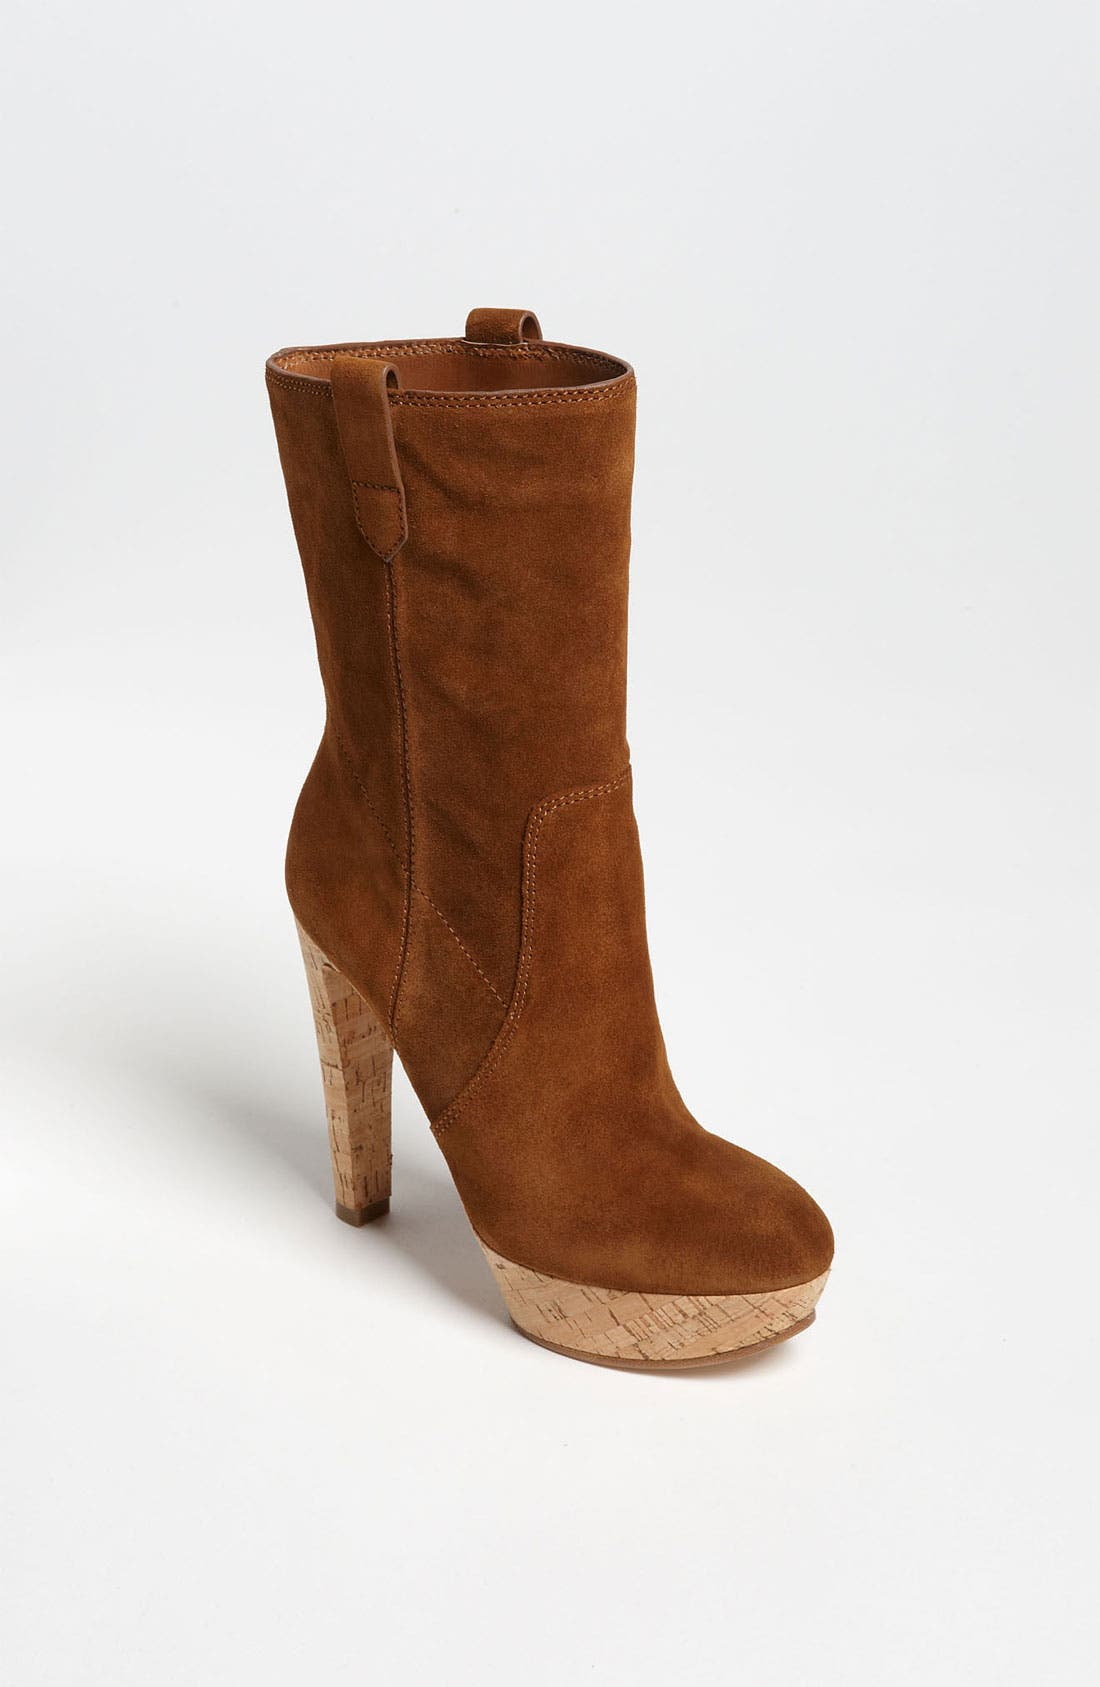 Main Image - KORS Michael Kors 'Brielle' Boot